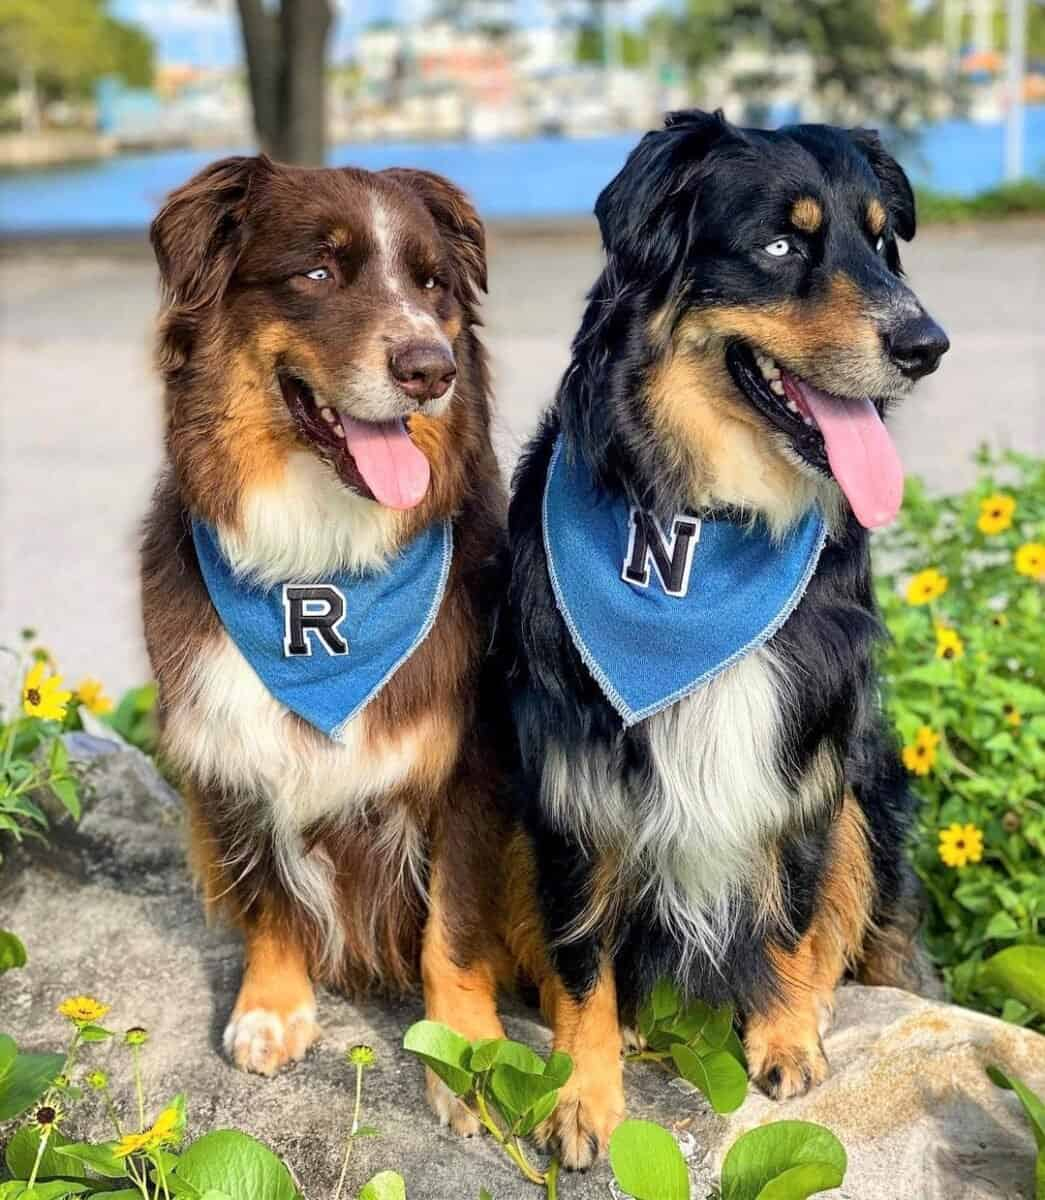 Two tri-color Australian Shepherds with different coat colors